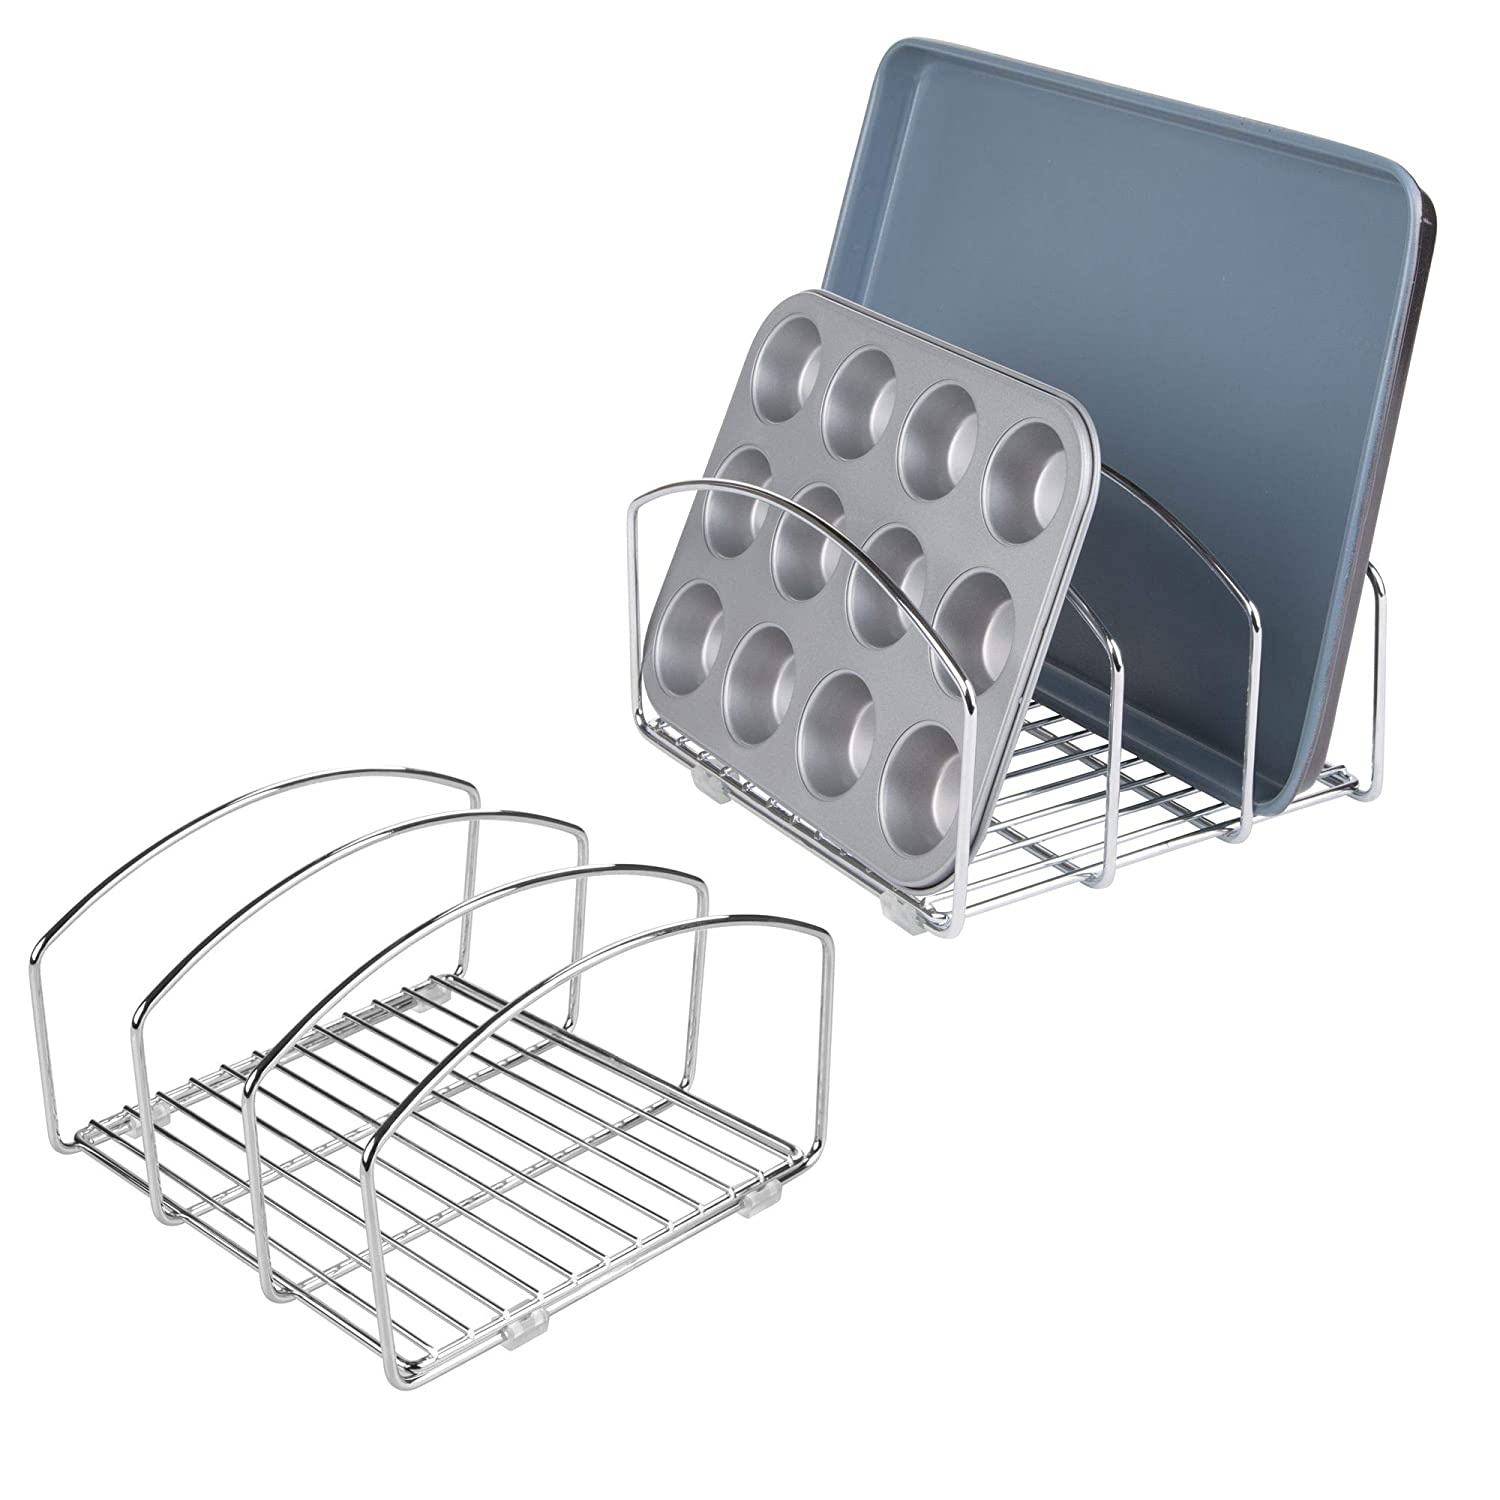 mDesign Kitchen Cookware Organizer for Cutting Boards and Cookie/Baking Sheets - Chrome MetroDecor 6550MDK